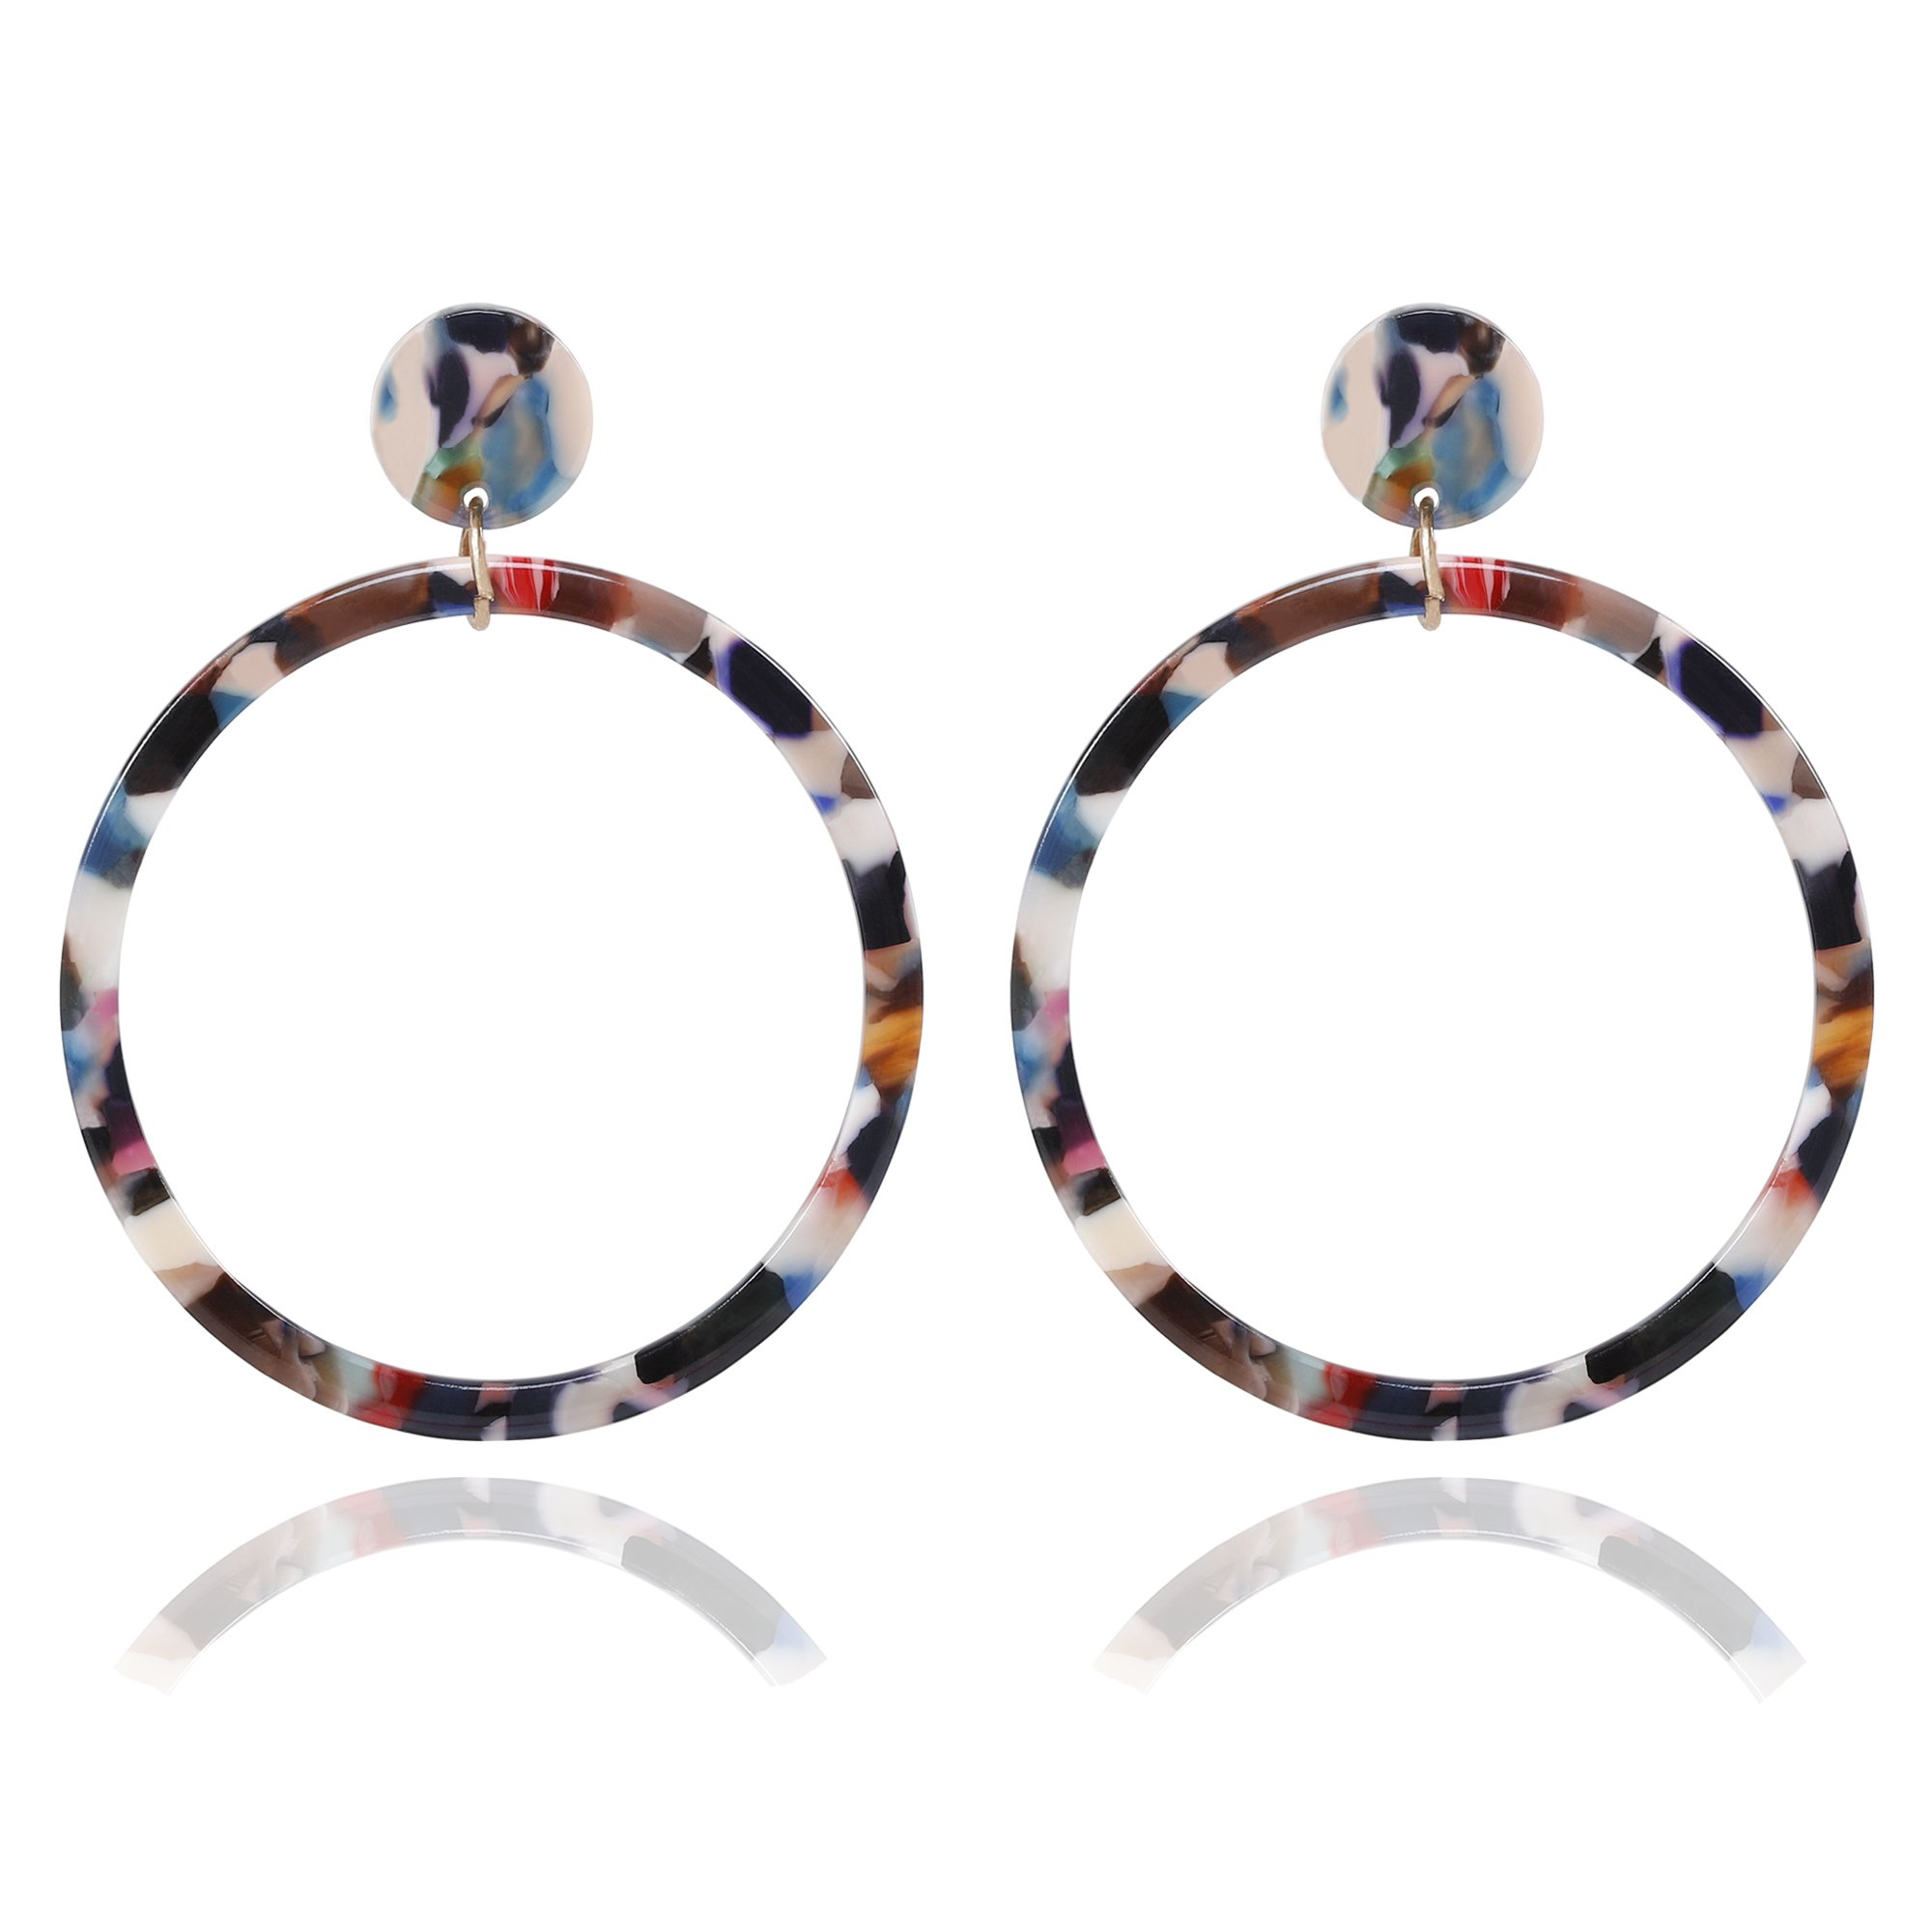 Acrylic Hoop Earrings Large Mottled Marble Circle Drop Dangle Earrings Tortoiseshell Round Stud Earrings for Women (Floral)